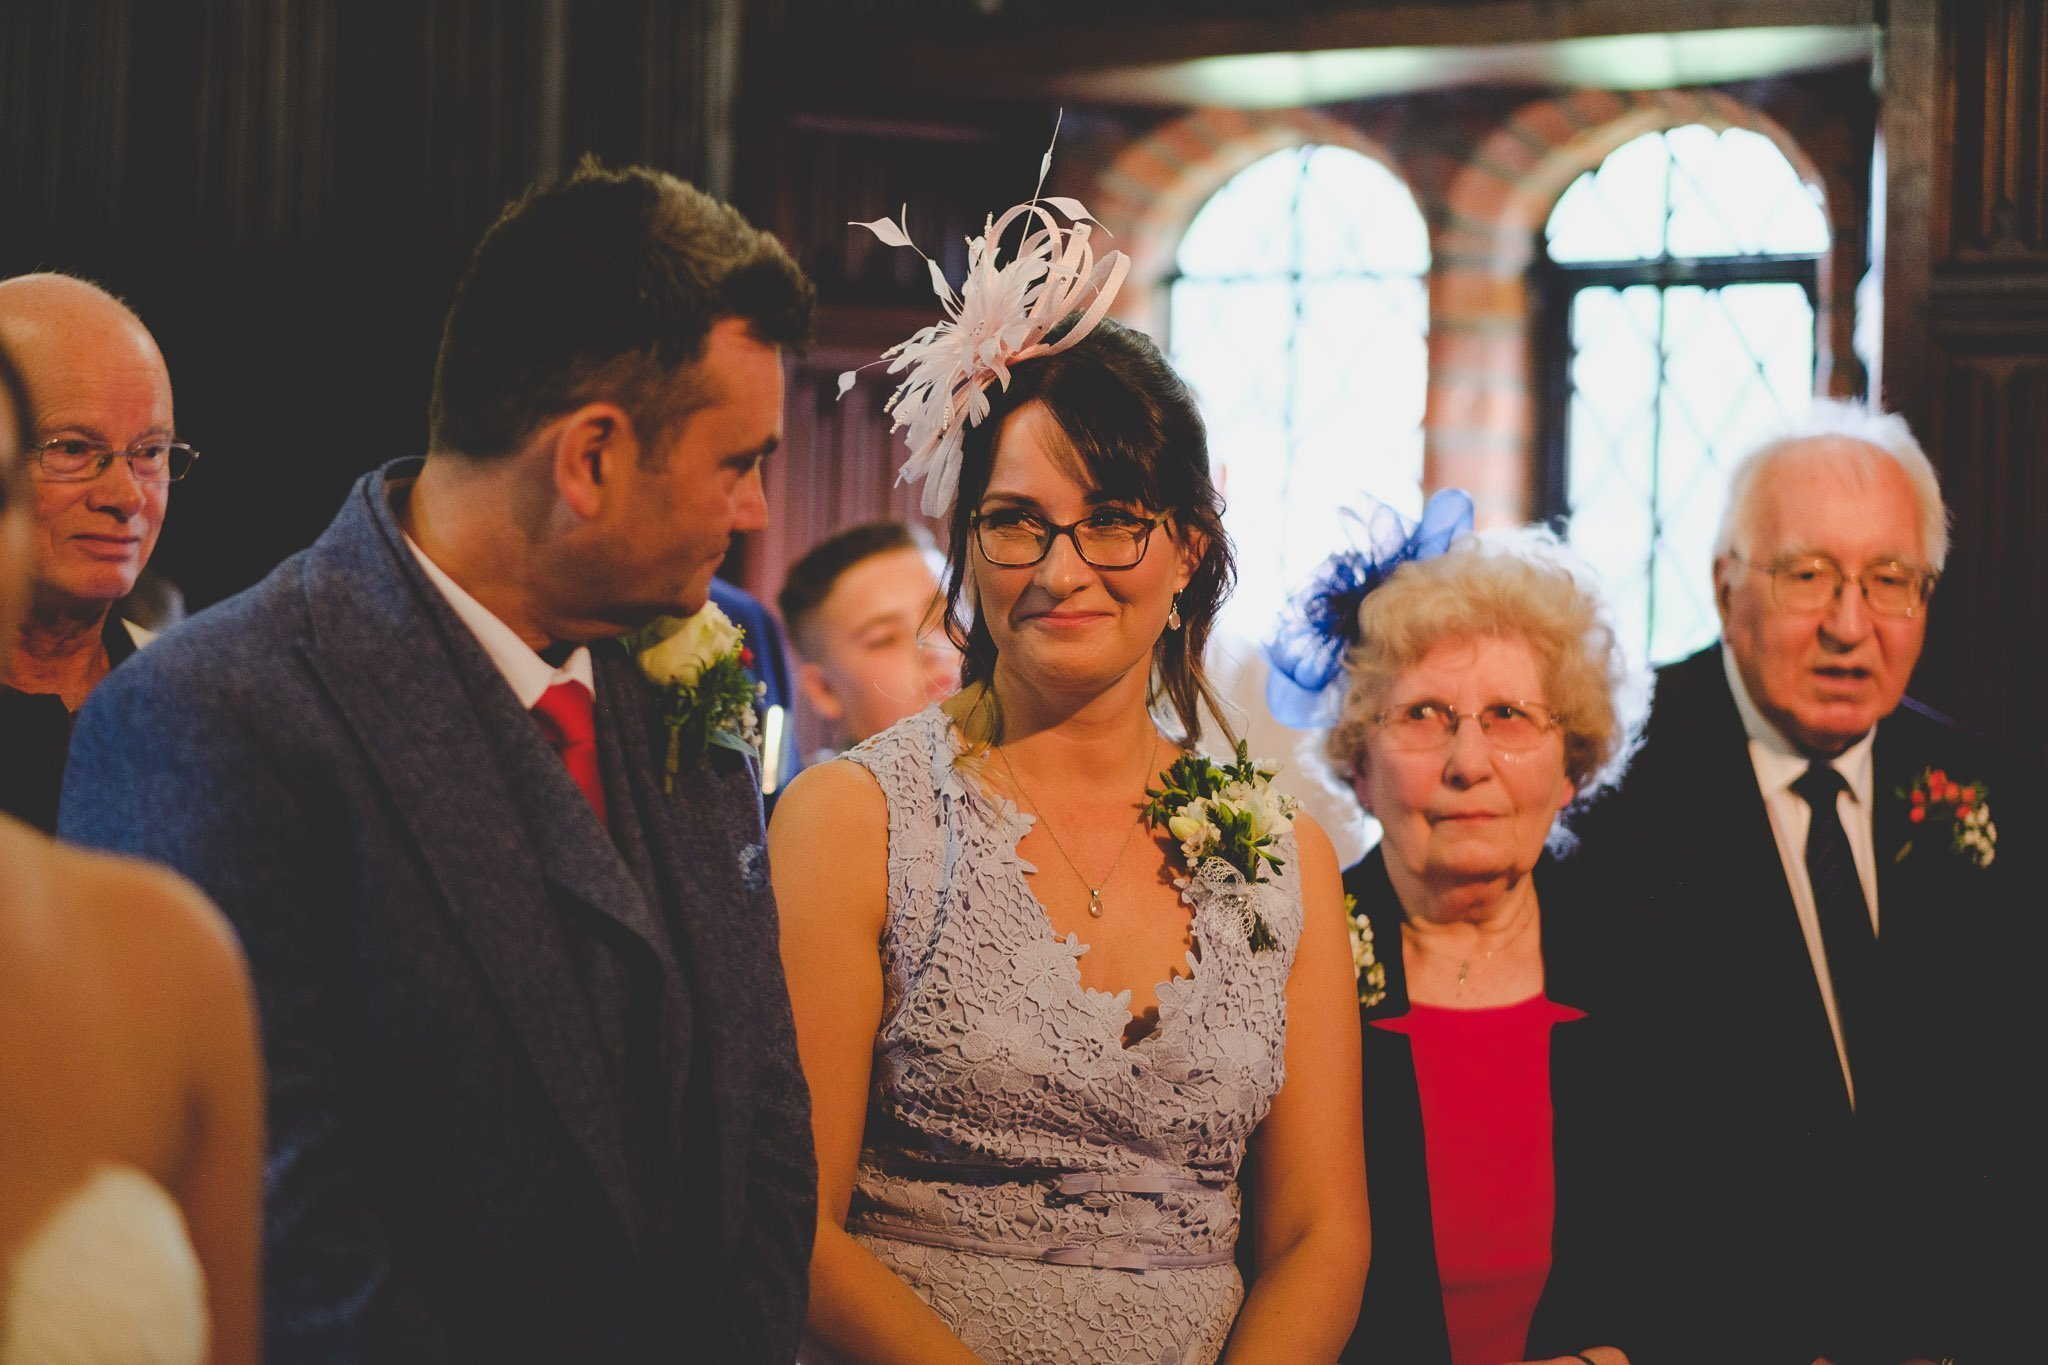 Mother and father of the bride glance at each other during ceremony at Leez Priory wedding